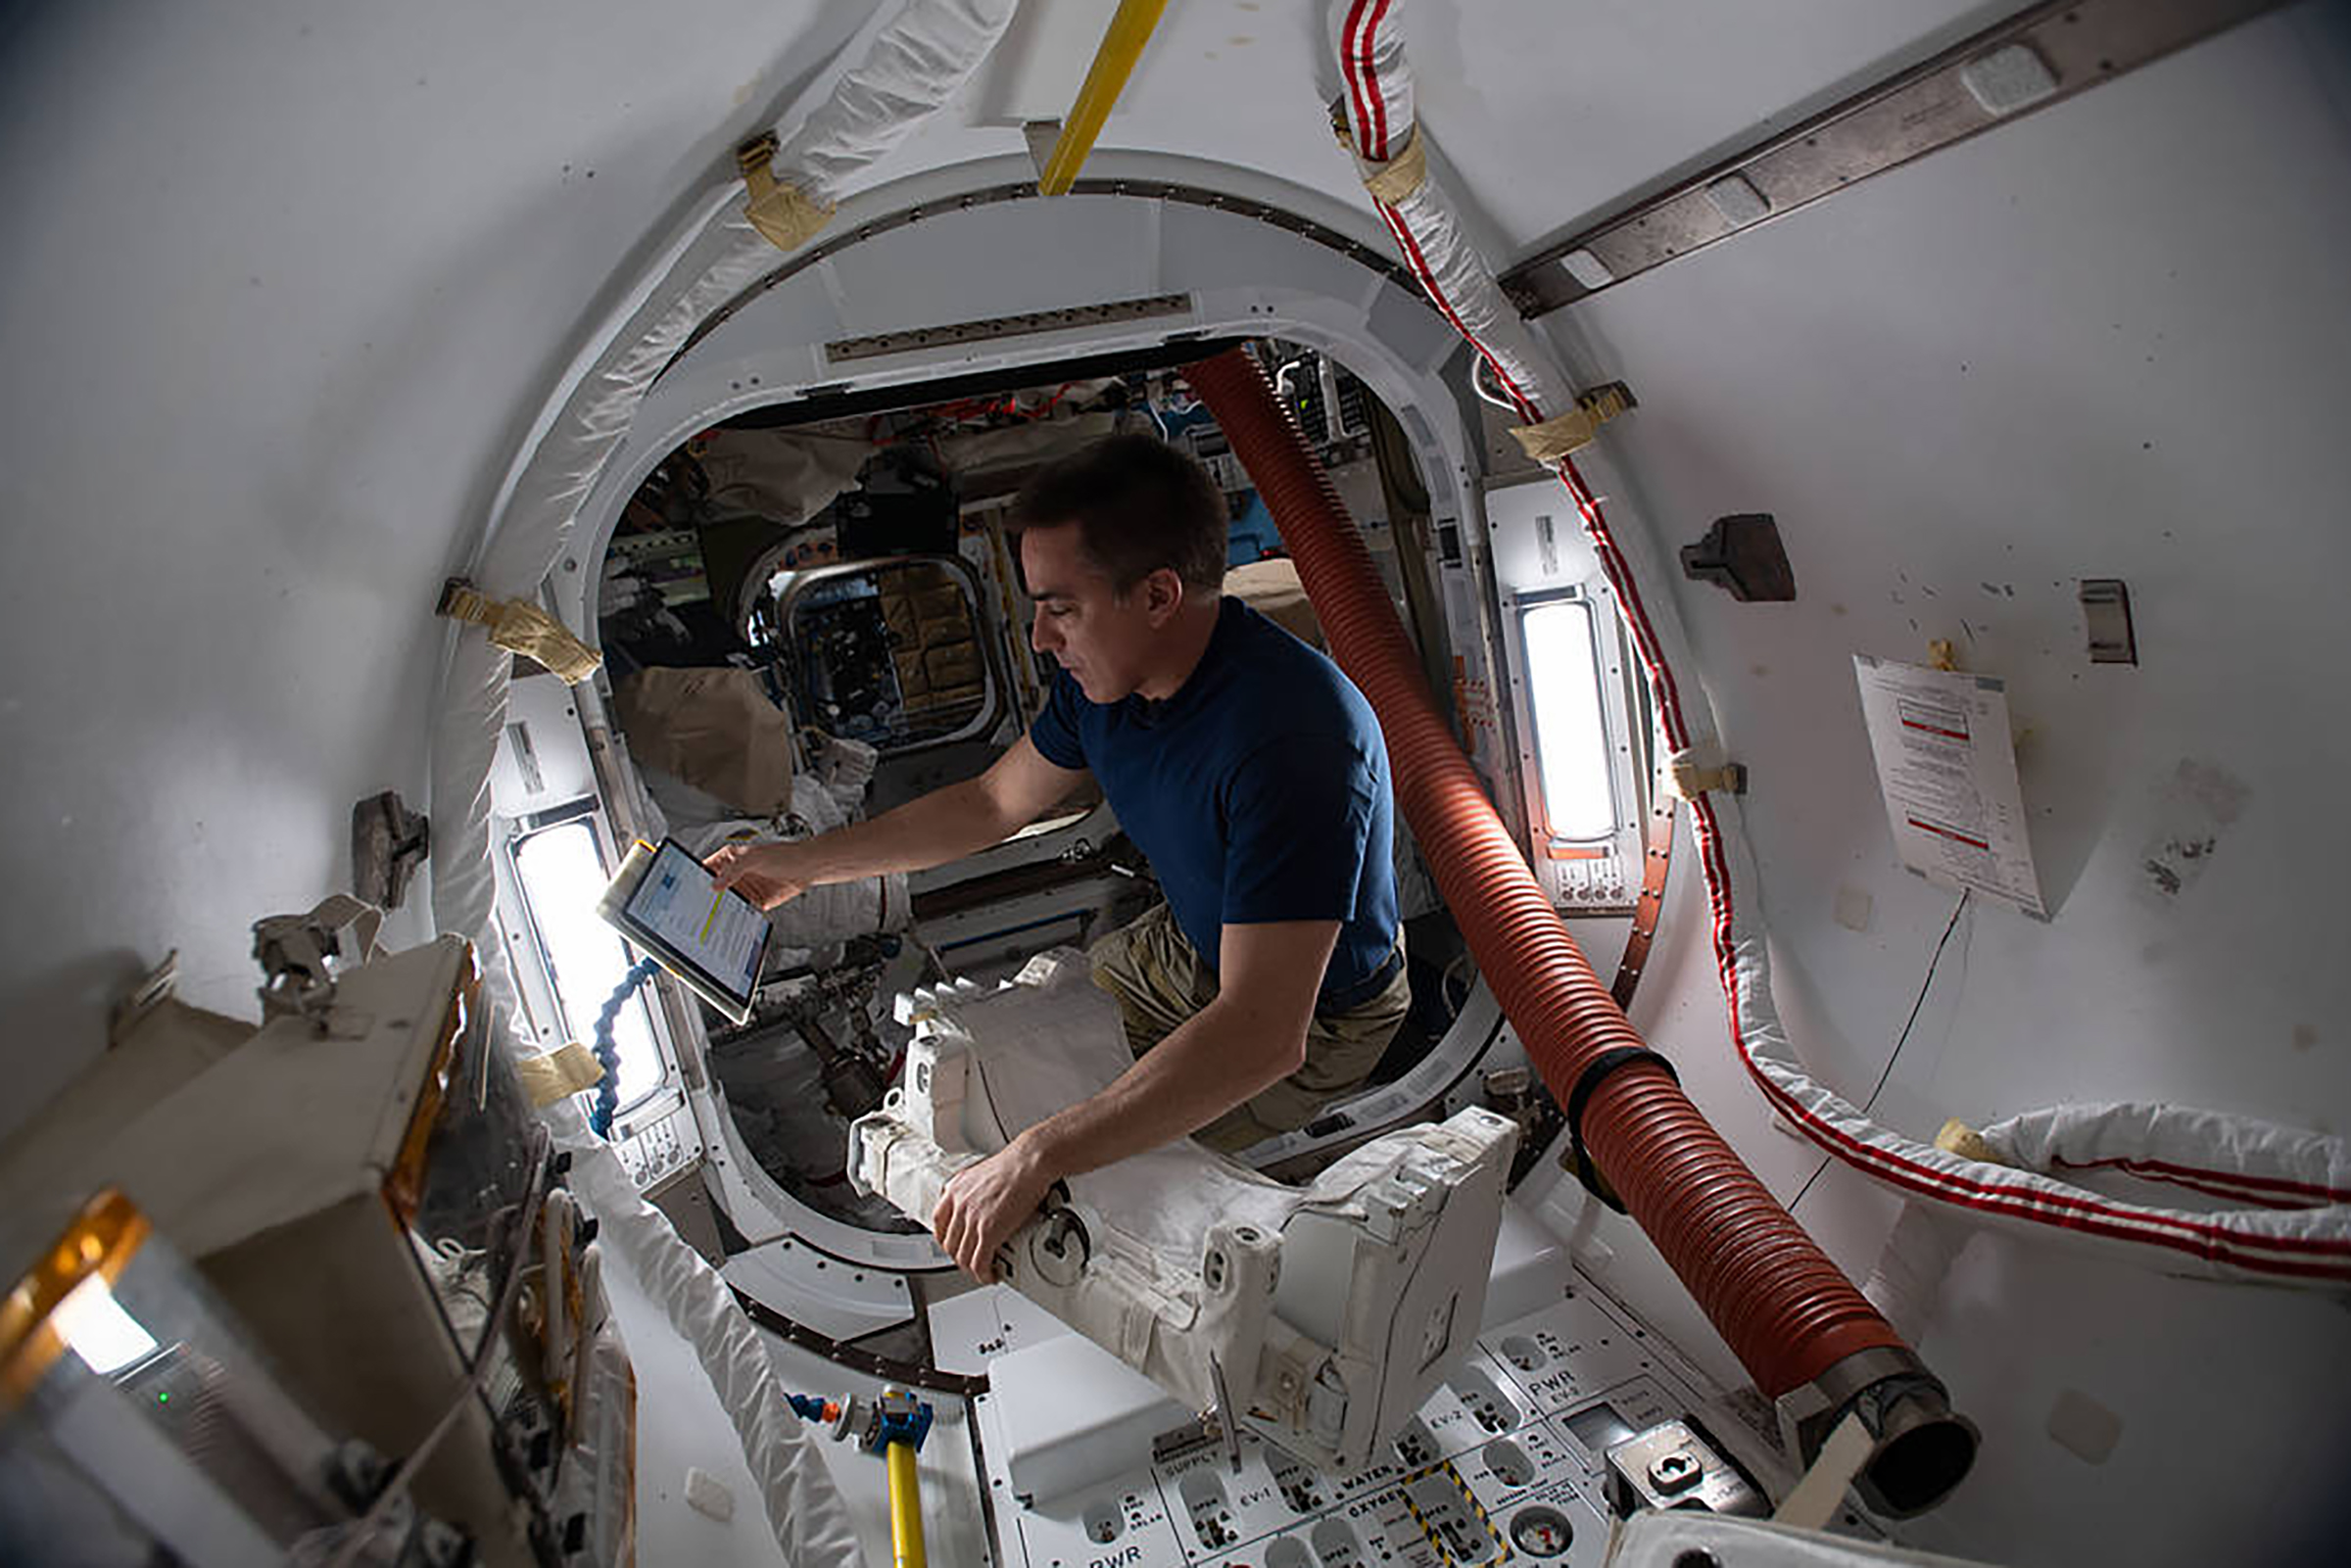 Chris Cassidy on one his trips to space.